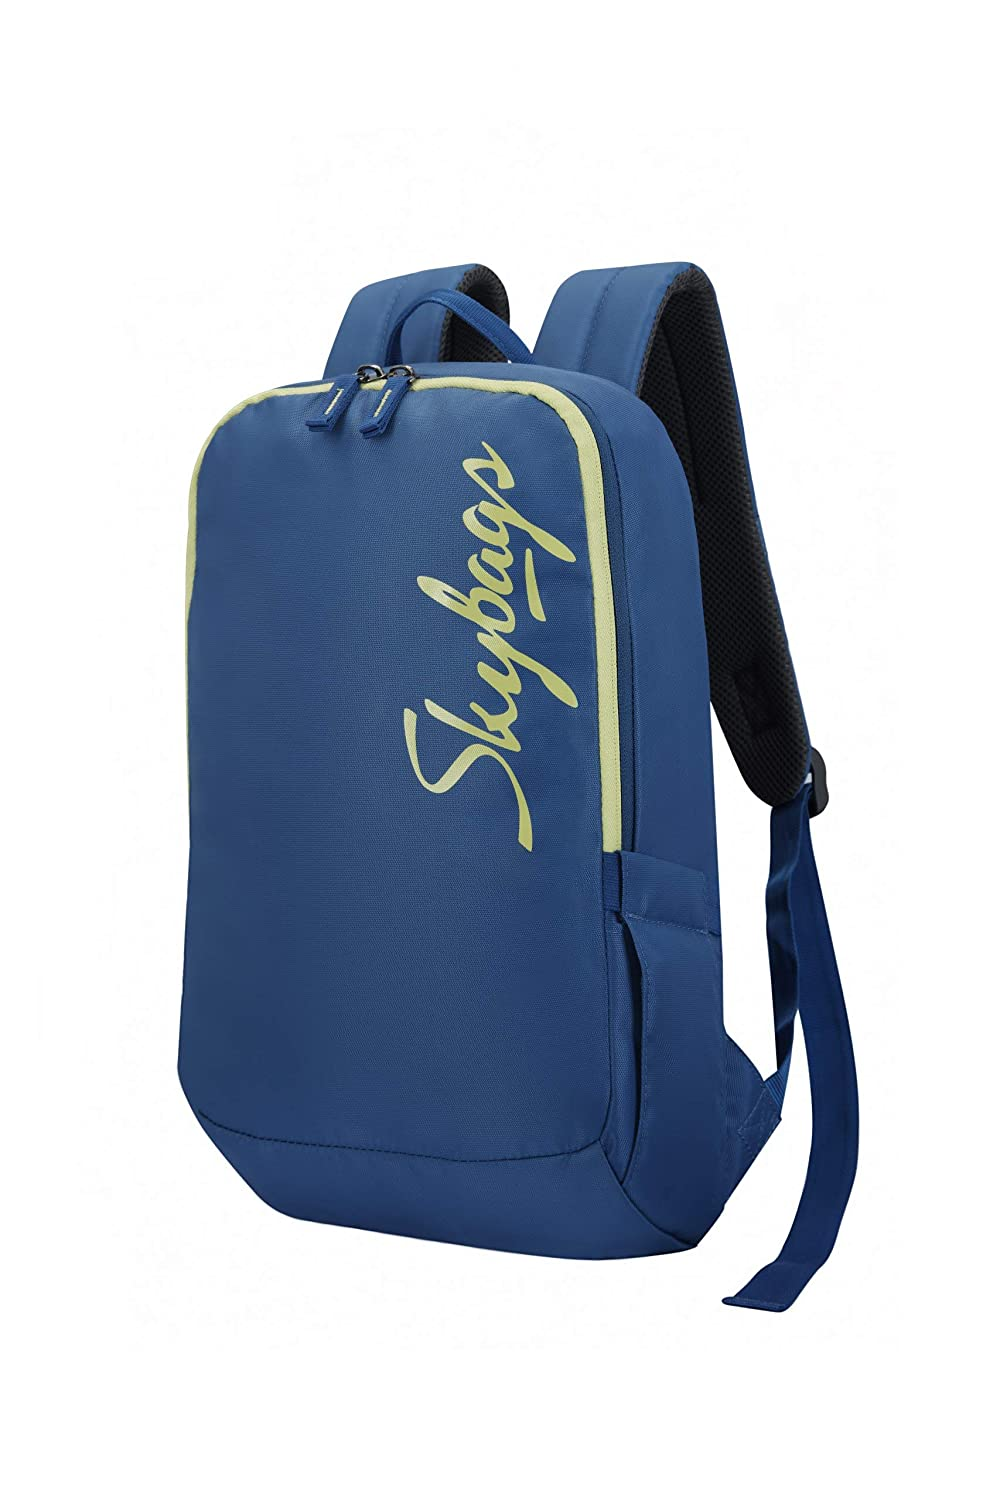 Skybags 42.5 cms Blue Causal Backpack (Decode)